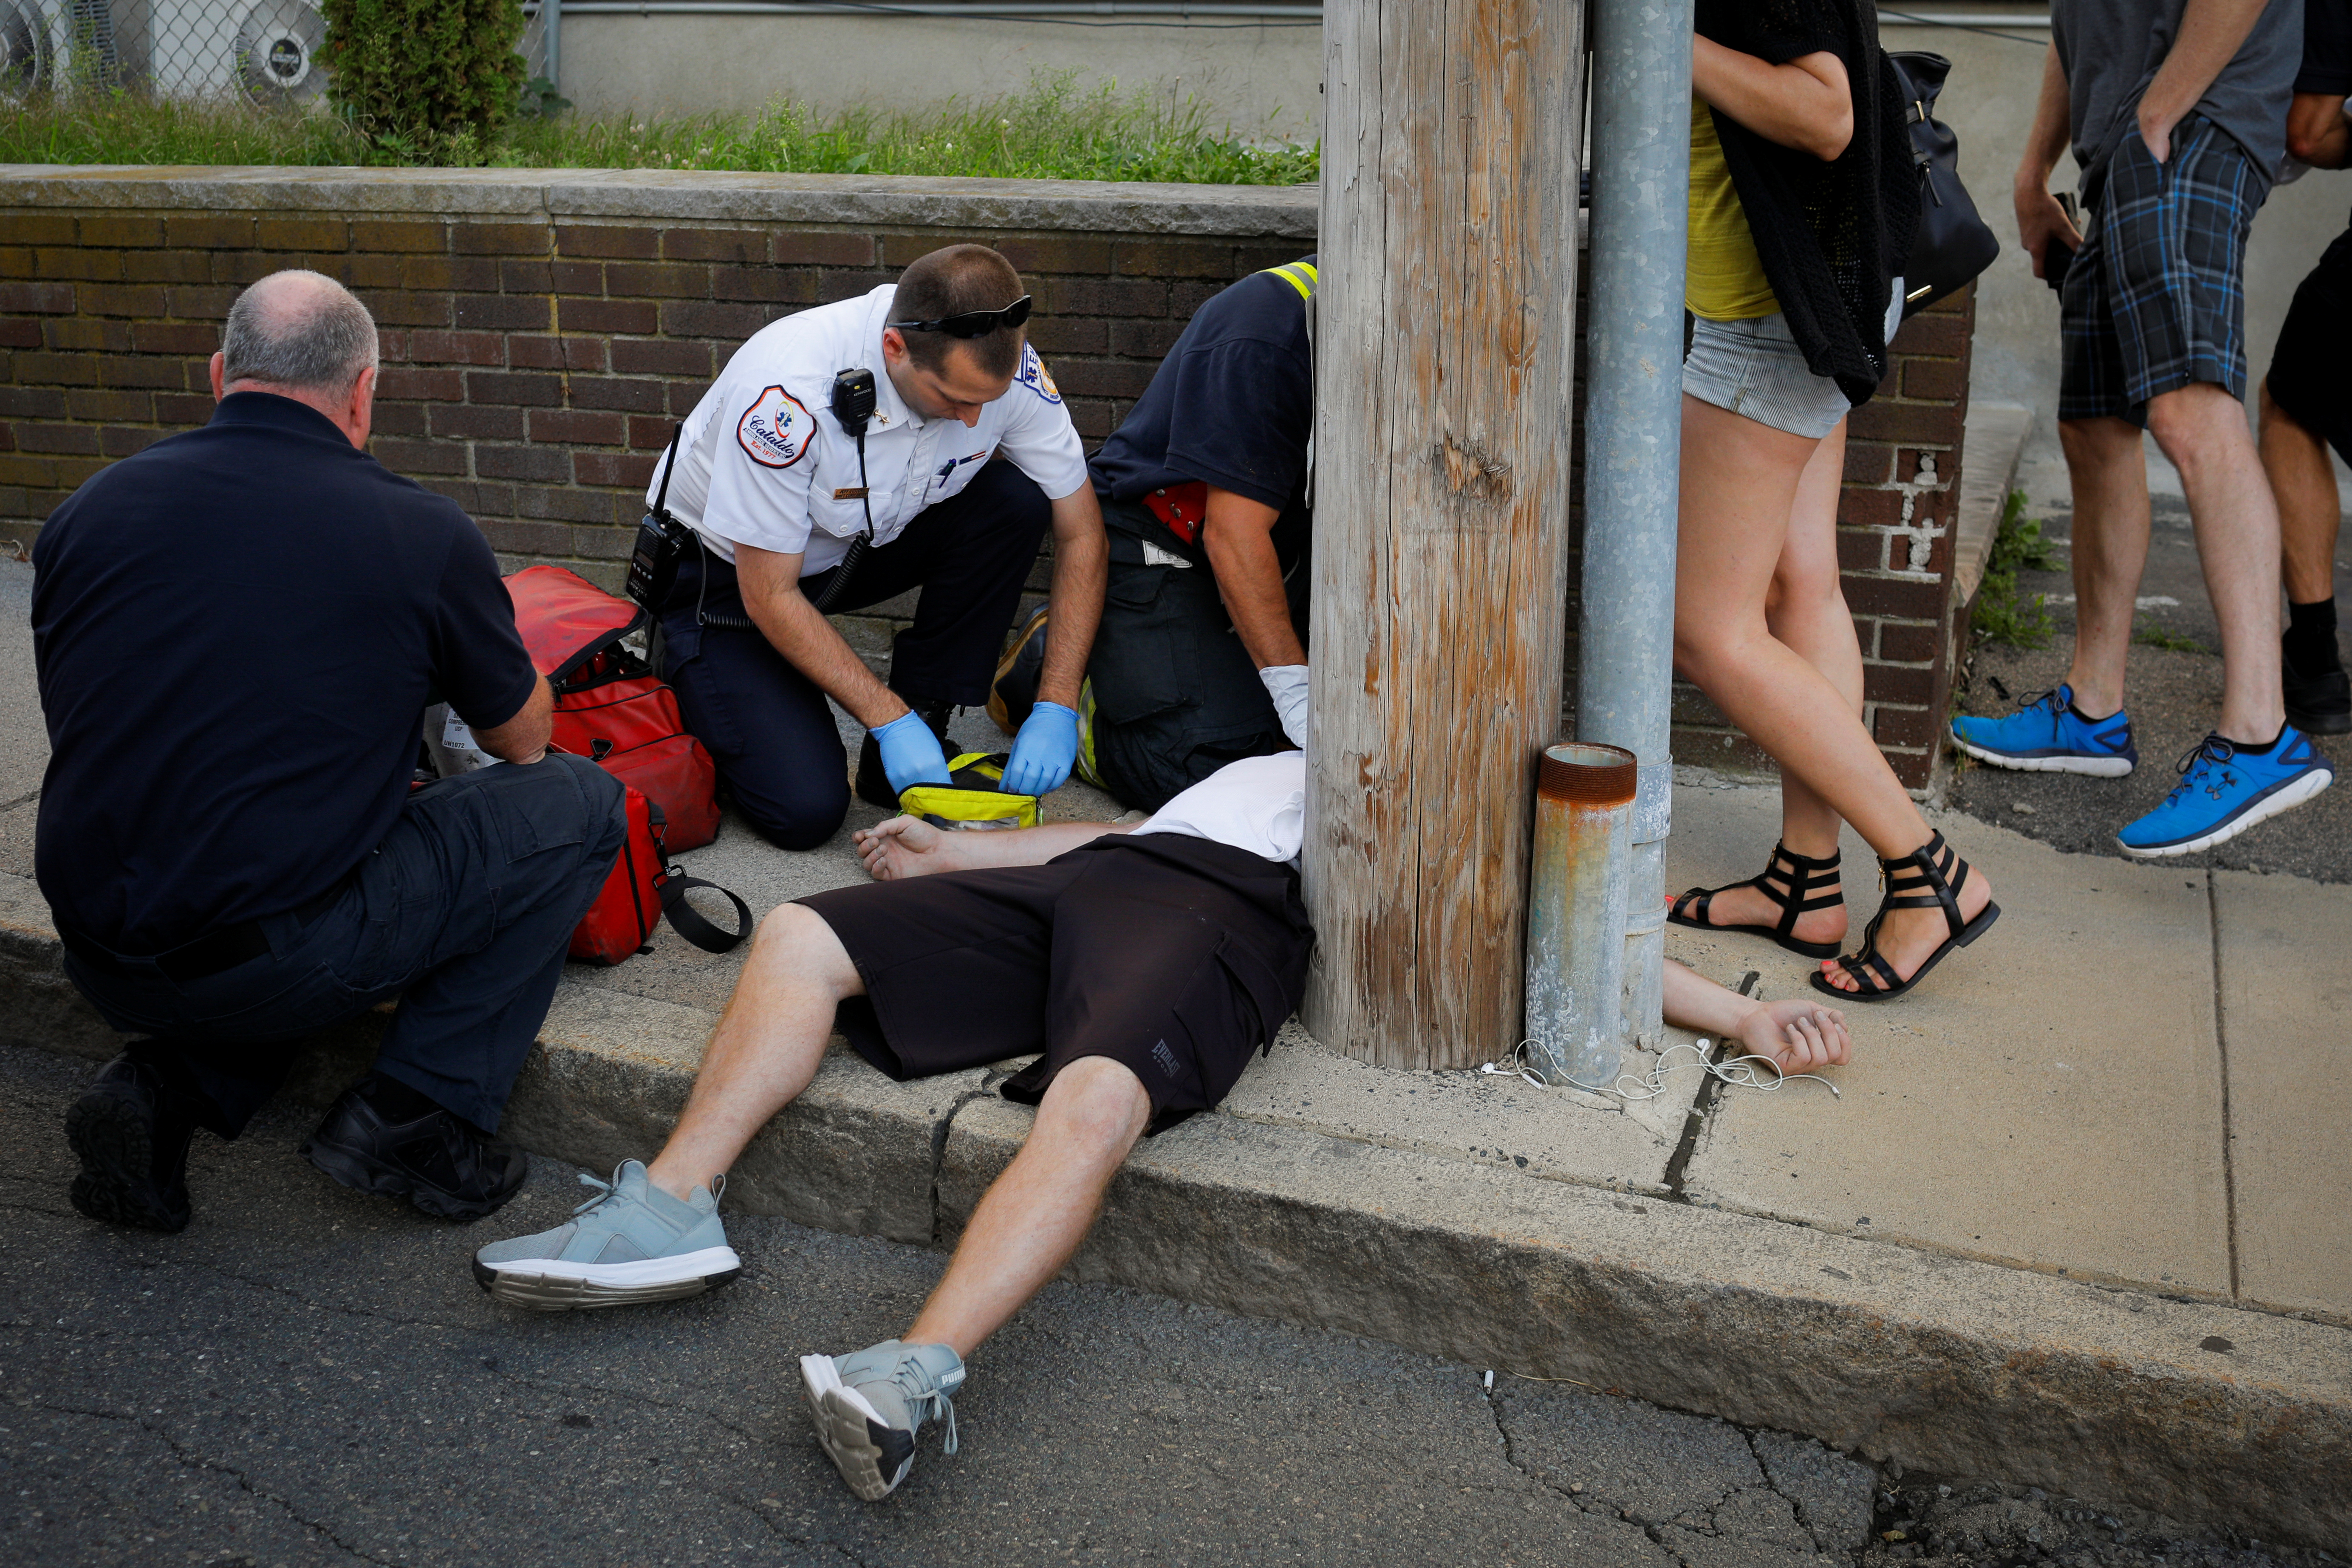 Cataldo Ambulance medics and other first responders revive a man who was found unresponsive and not breathing after an opioid overdose on a sidewalk in the Boston suburb of Everett, Massachusetts, U.S., August 23, 2017. REUTERS/Brian Snyder